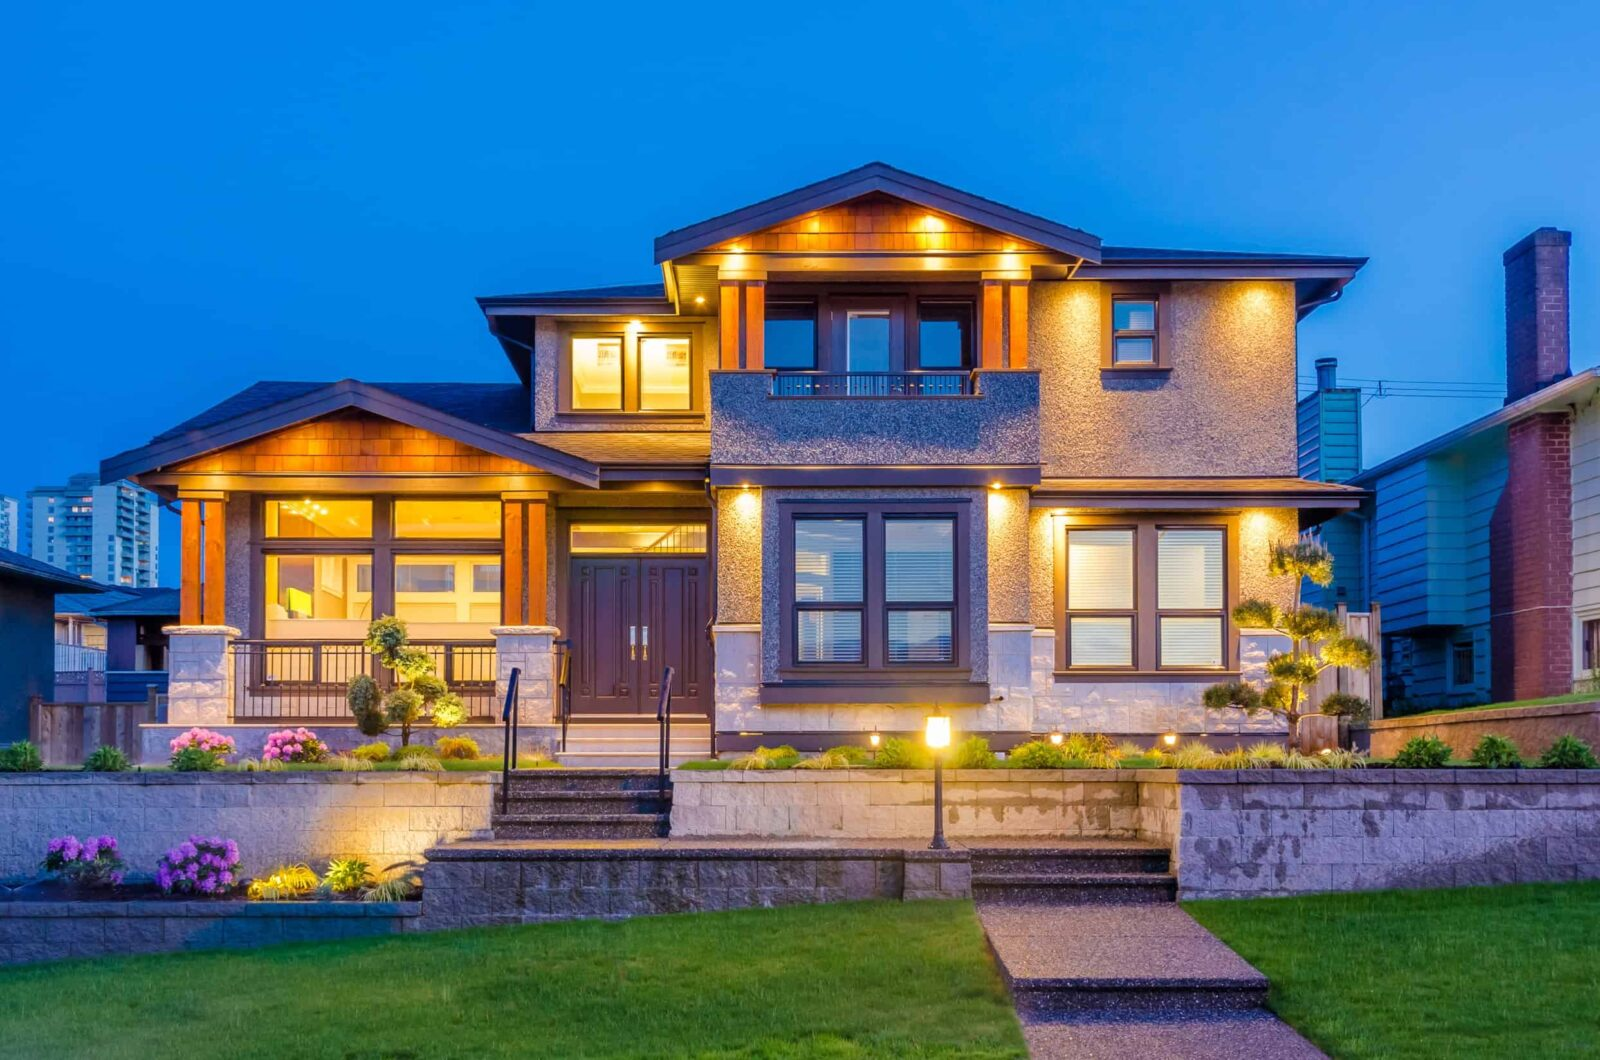 Home Developer's Guide to Increasing Registrations with Facebook